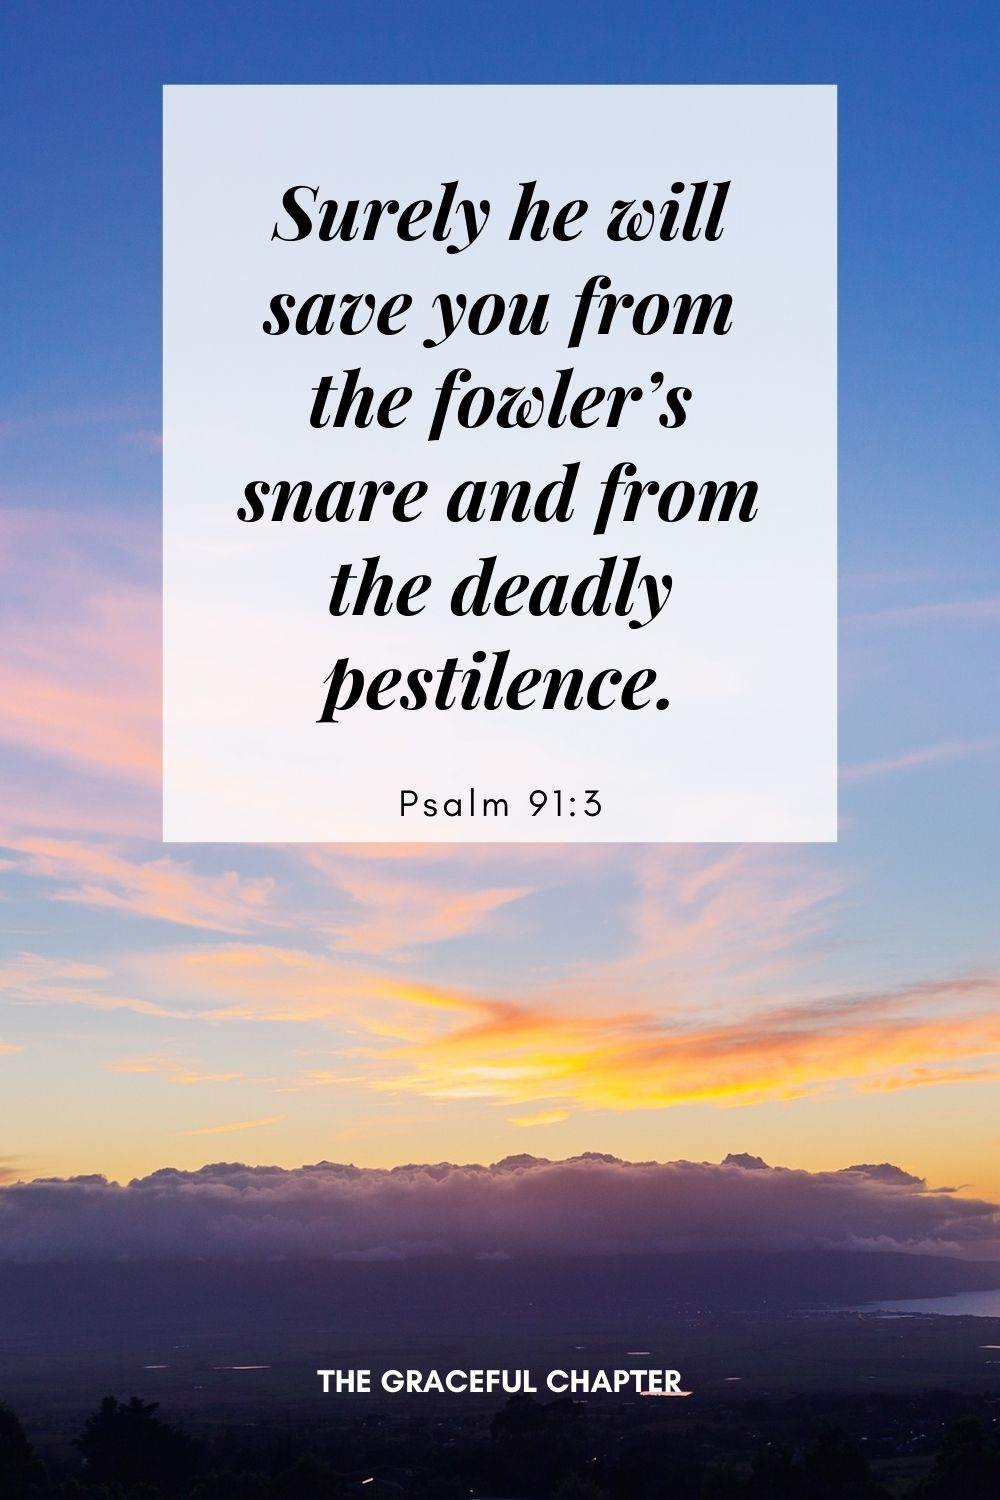 Surely he will save you from the fowler's snare and from the deadly pestilence. -Psalm 91:3